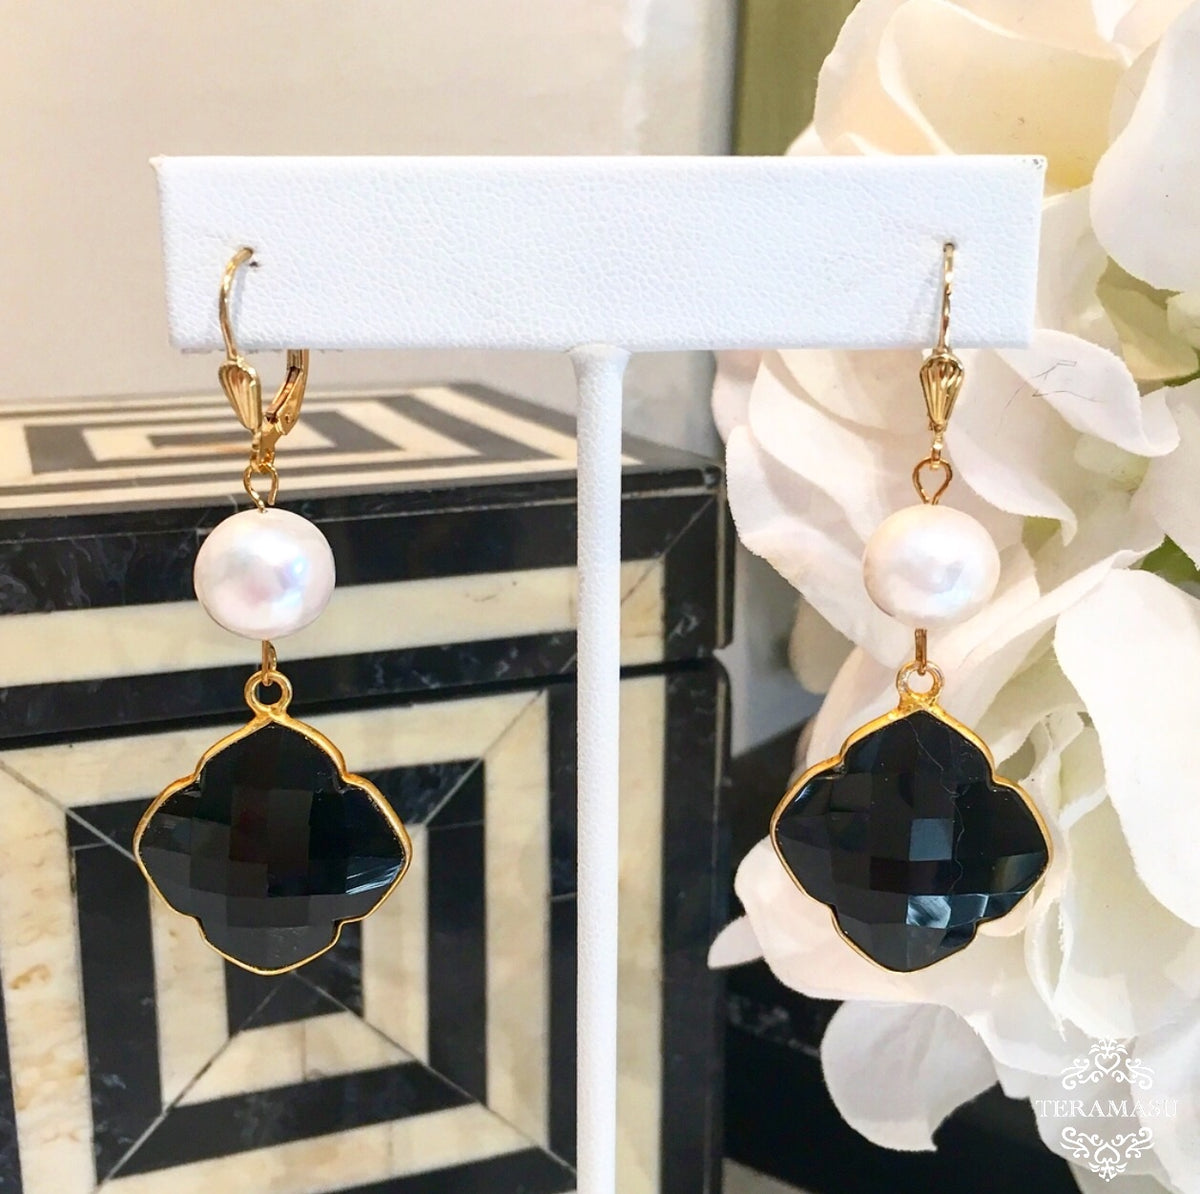 Chic Peek: The Perfect Classic Black and White Statement Earring from Teramasu